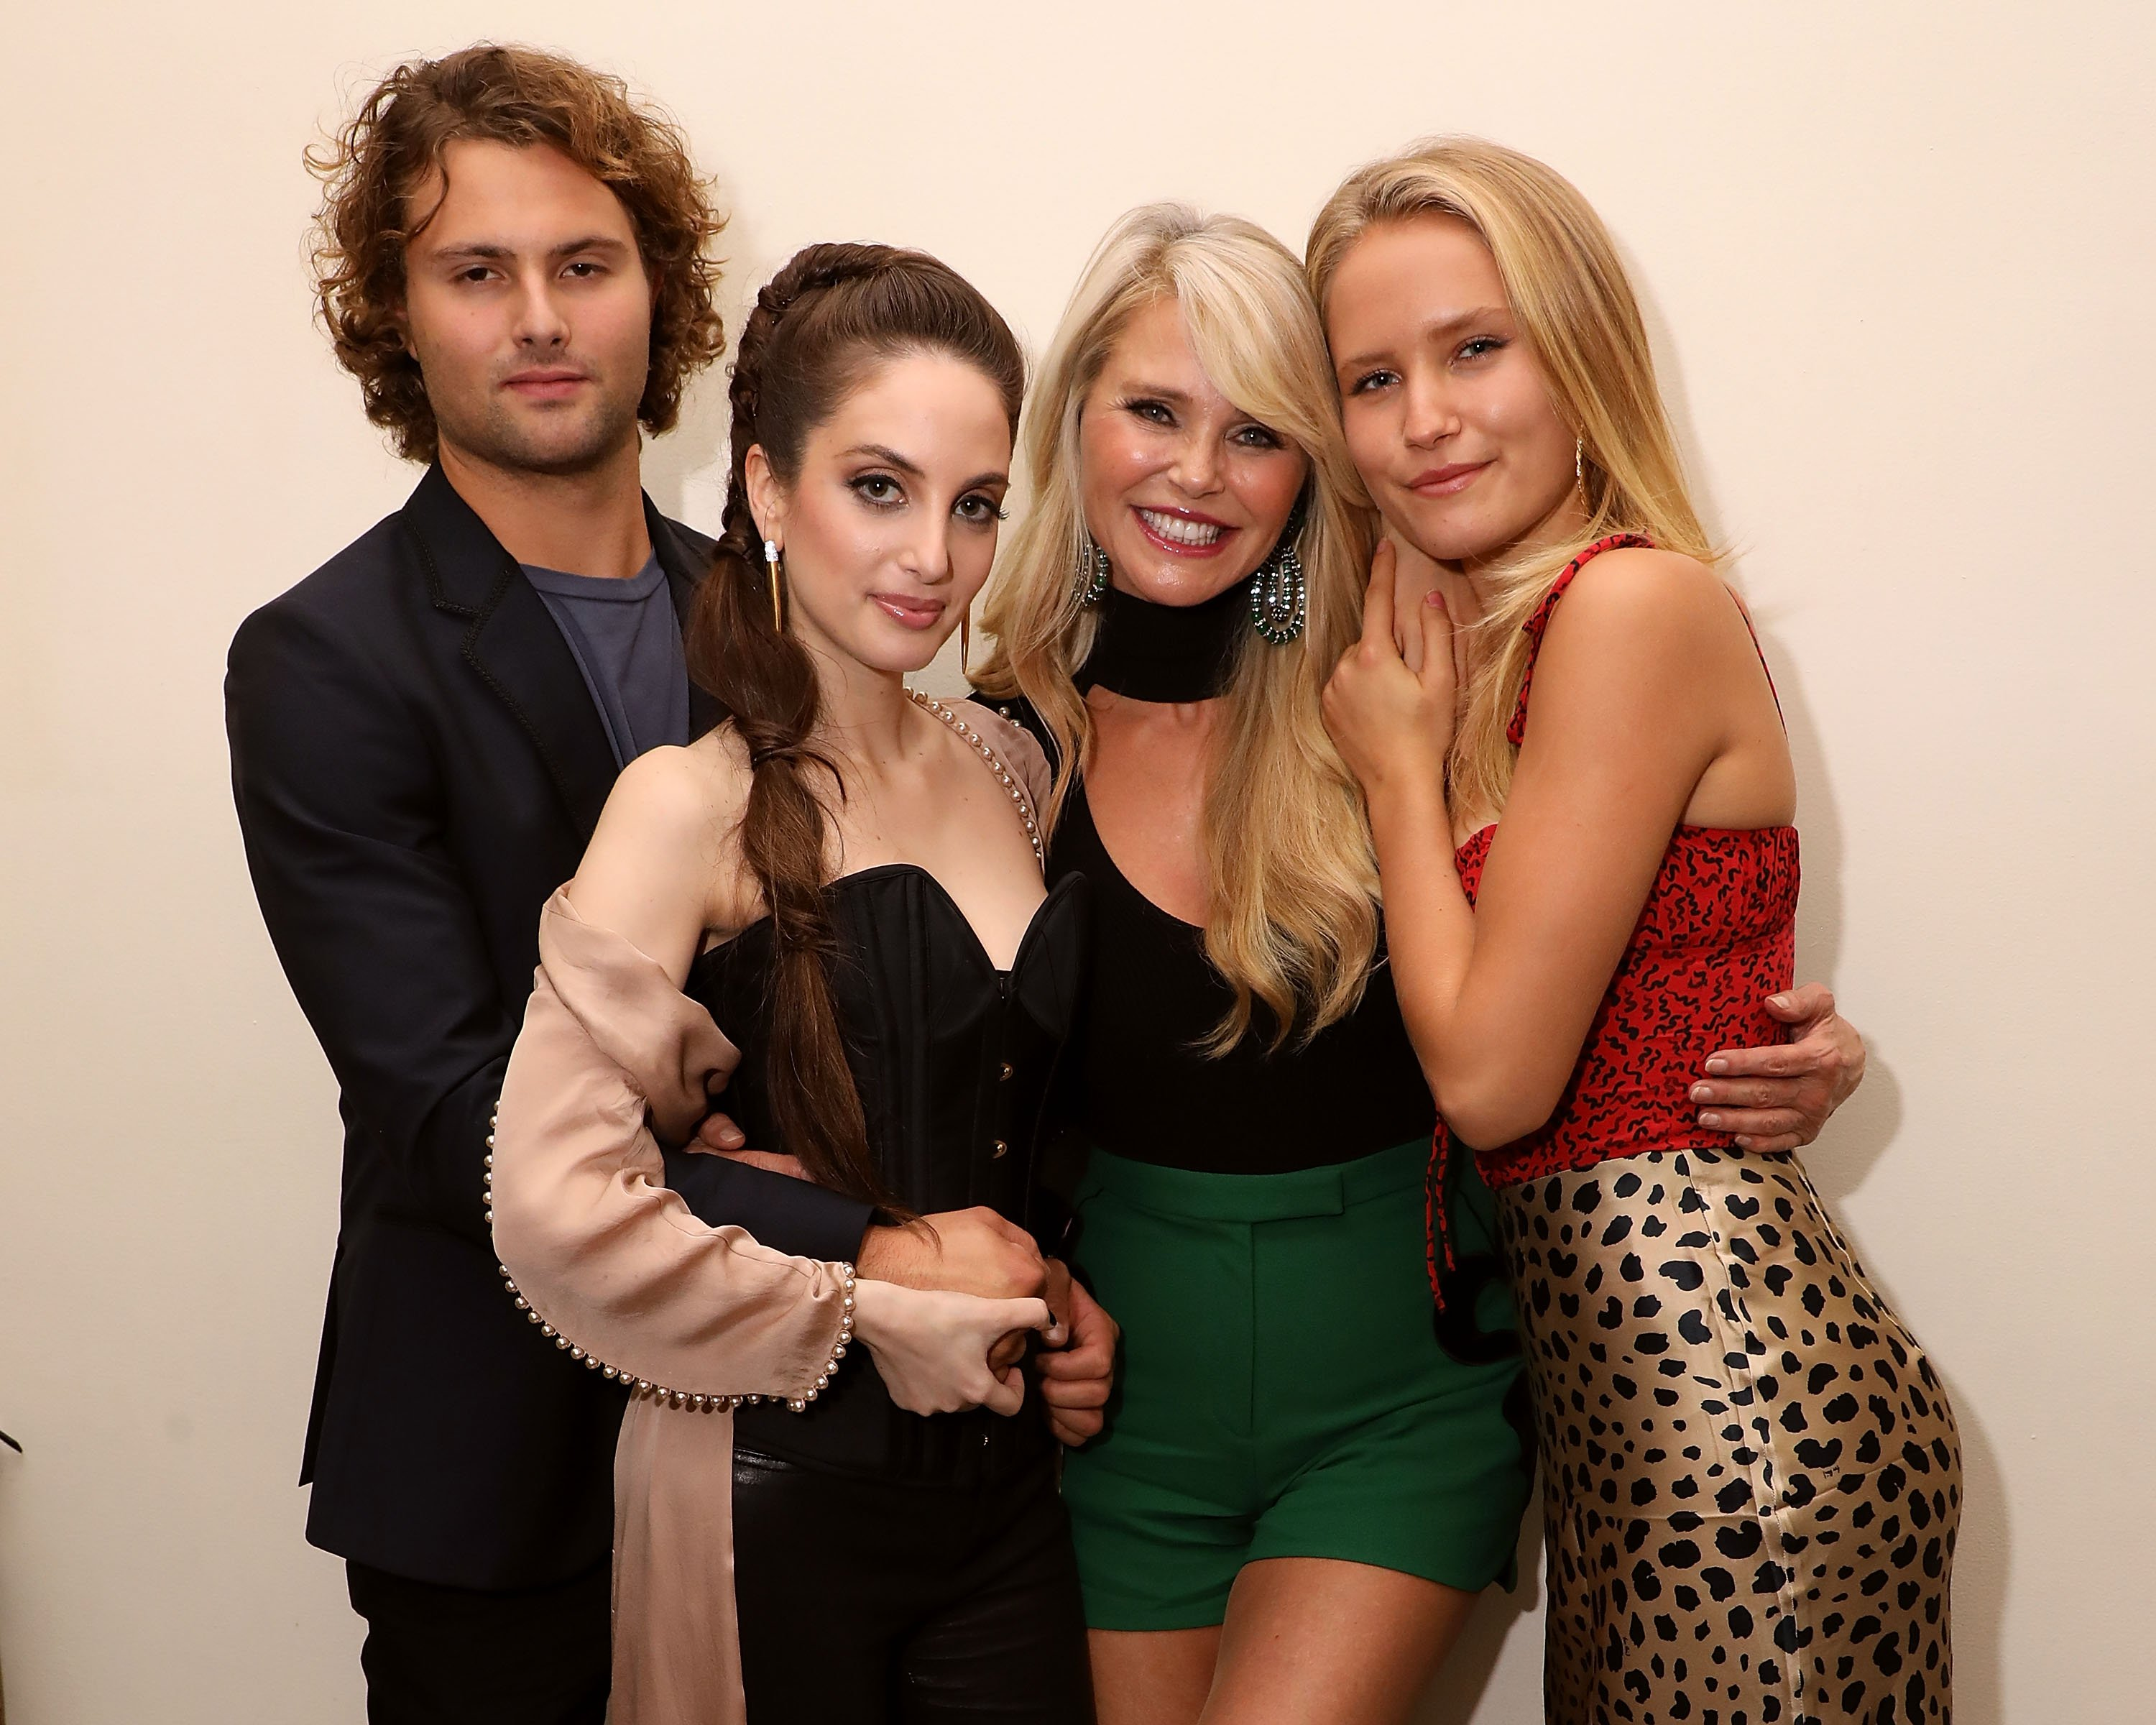 Image Credits: Getty Images / Taylor Hill | Jack Brinkley-Cook, Alexa Ray Joel, Christie Brinkley, and Sailor Lee Brinkley-Cook celebrate the opening night of Alexa Ray Joel's 2018 residency at Cafe Carlyle on September 25, 2018 in New York City.